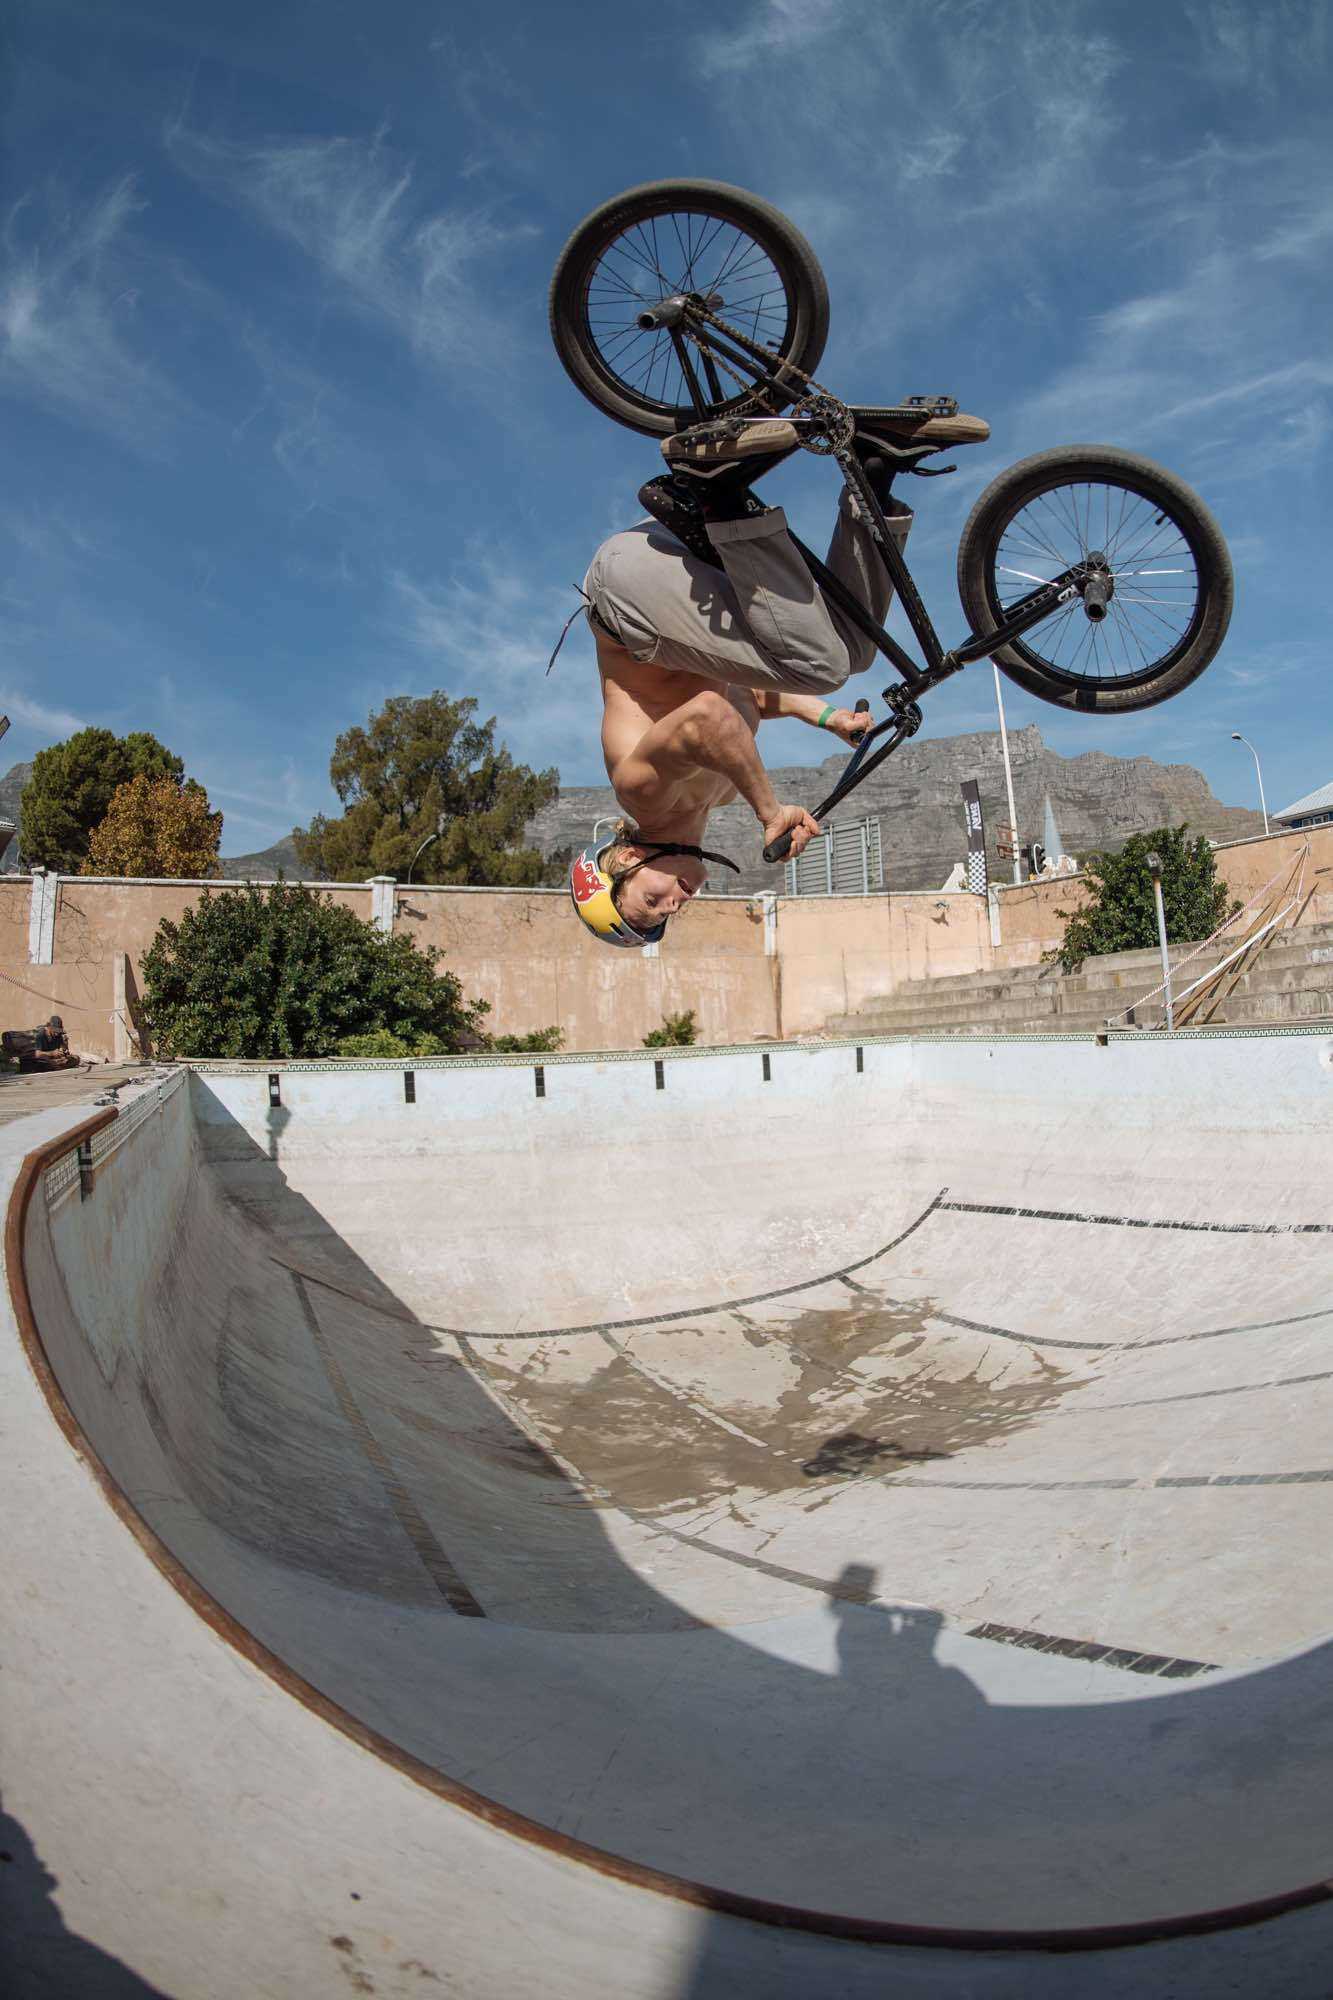 Murray Loubser competing in the Waffle Jam 2019 BMX contest